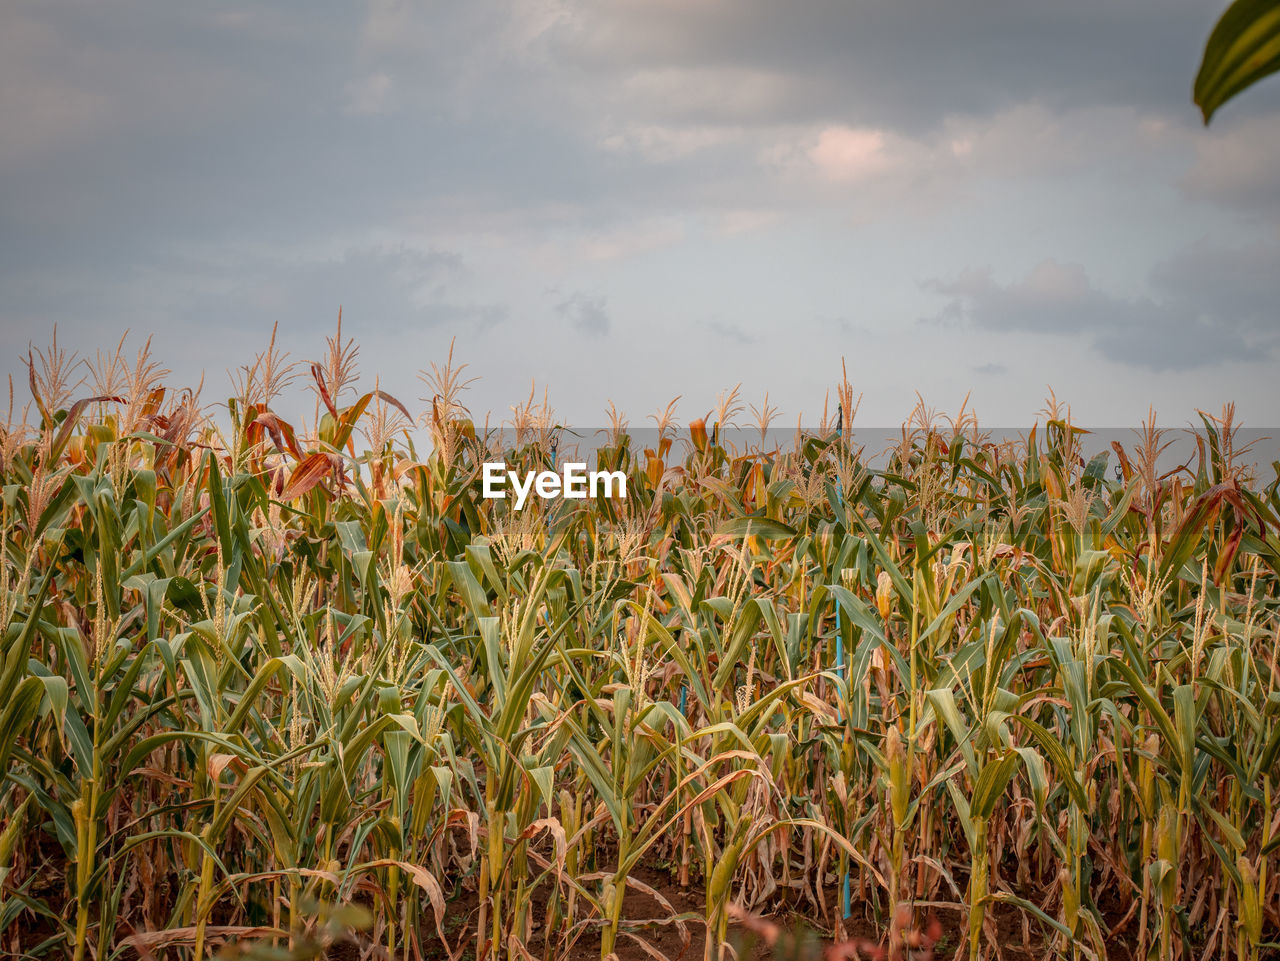 growth, sky, cloud - sky, field, plant, agriculture, land, crop, beauty in nature, cereal plant, farm, rural scene, landscape, nature, tranquility, no people, scenics - nature, day, corn, environment, plantation